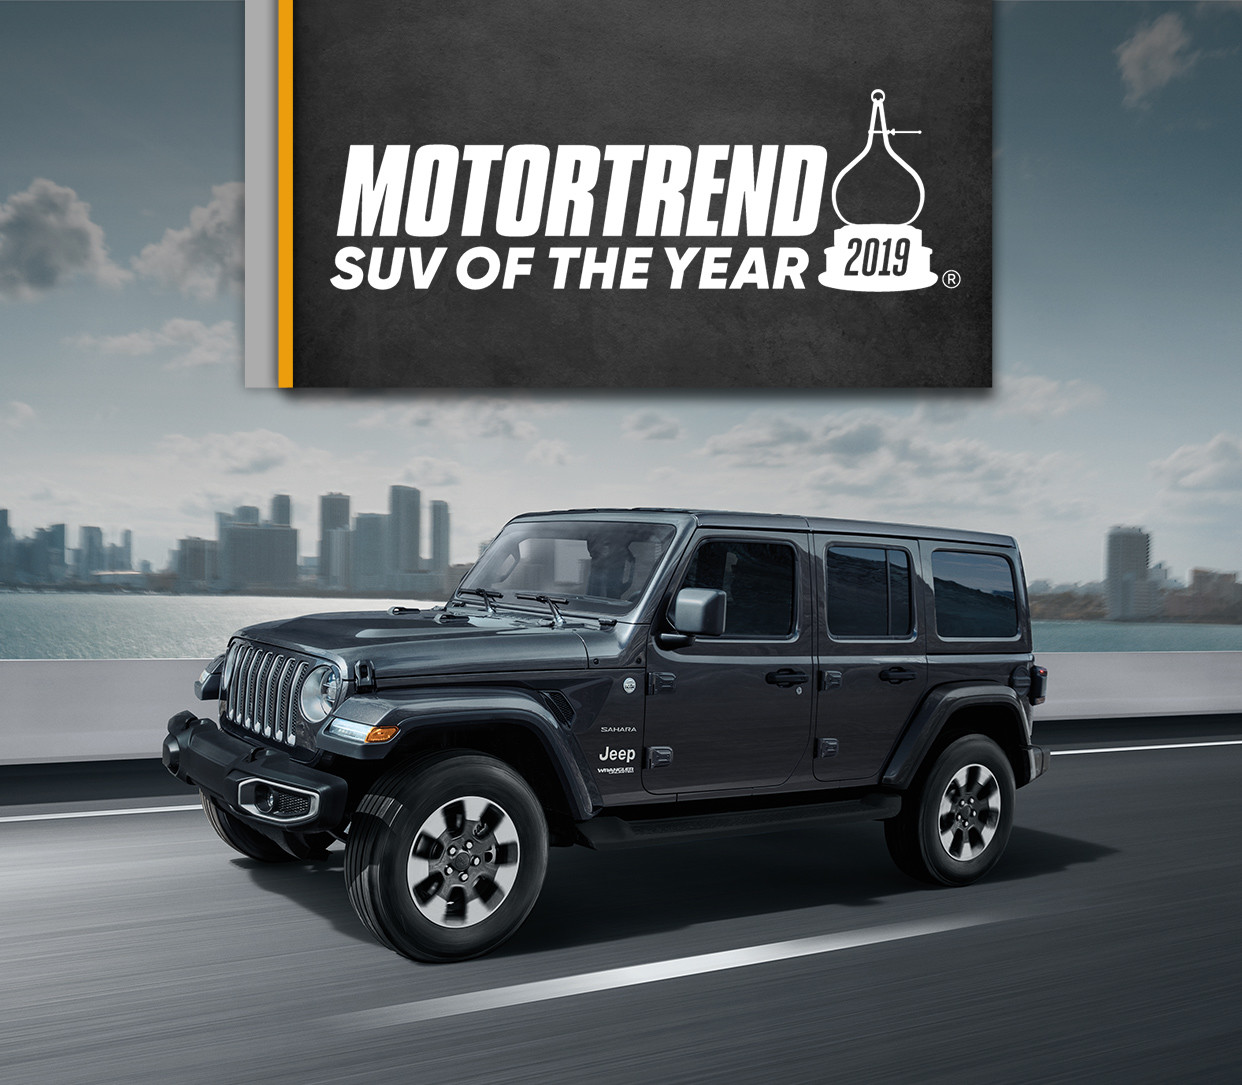 2019 Jeep Wrangler: Jeep Off-Road Vehicles